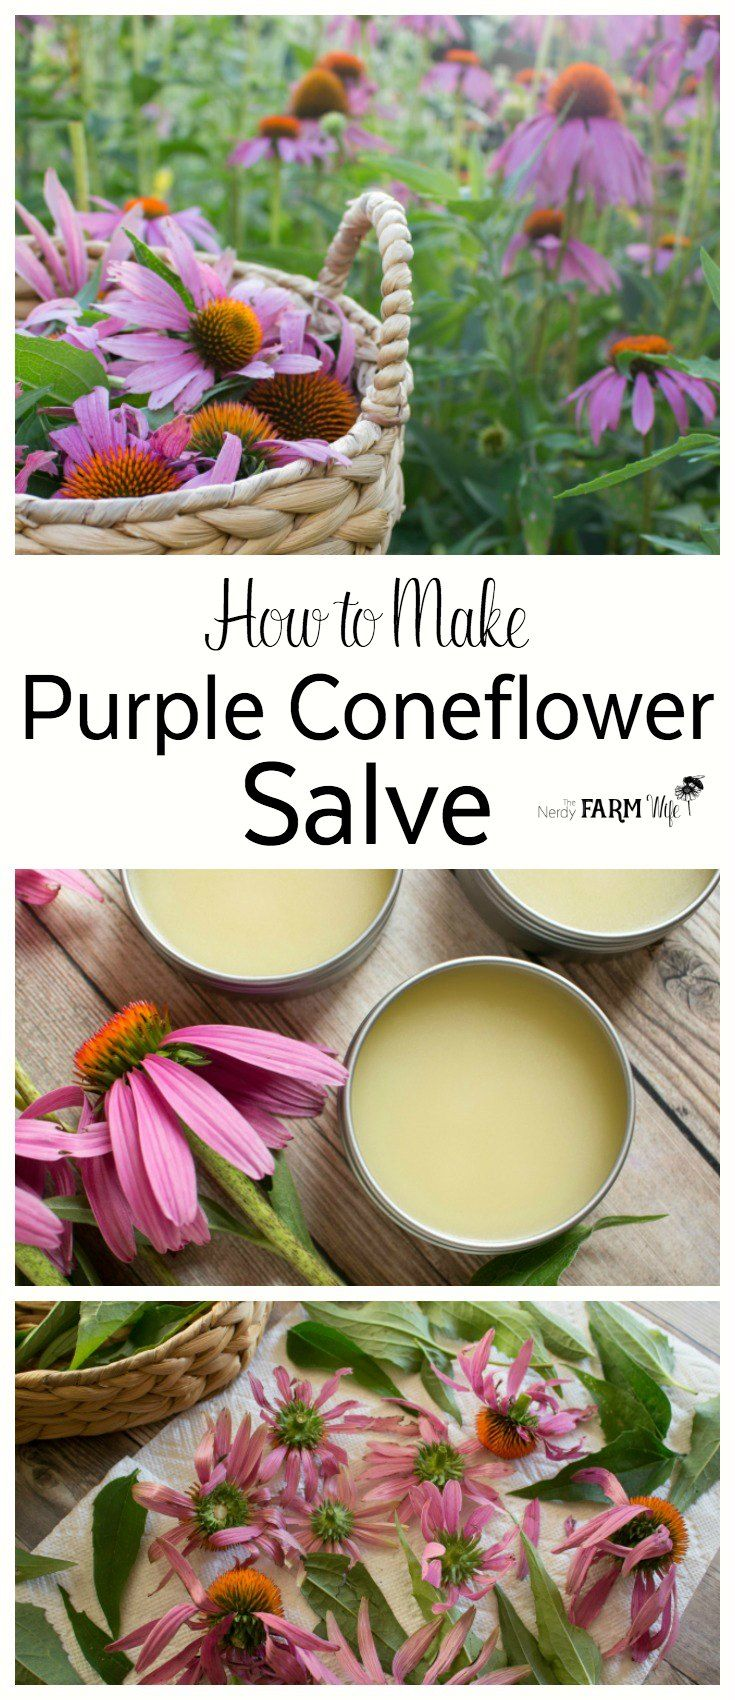 How to Make Echinacea (Purple Coneflower) Oil & Salve - The oil and salve made from the leaves and flowers of purple coneflower (Echinacea pupurea) is super simple to make and useful to keep on hand for treating wounds, stings, bug bites and chapped irritated skin.